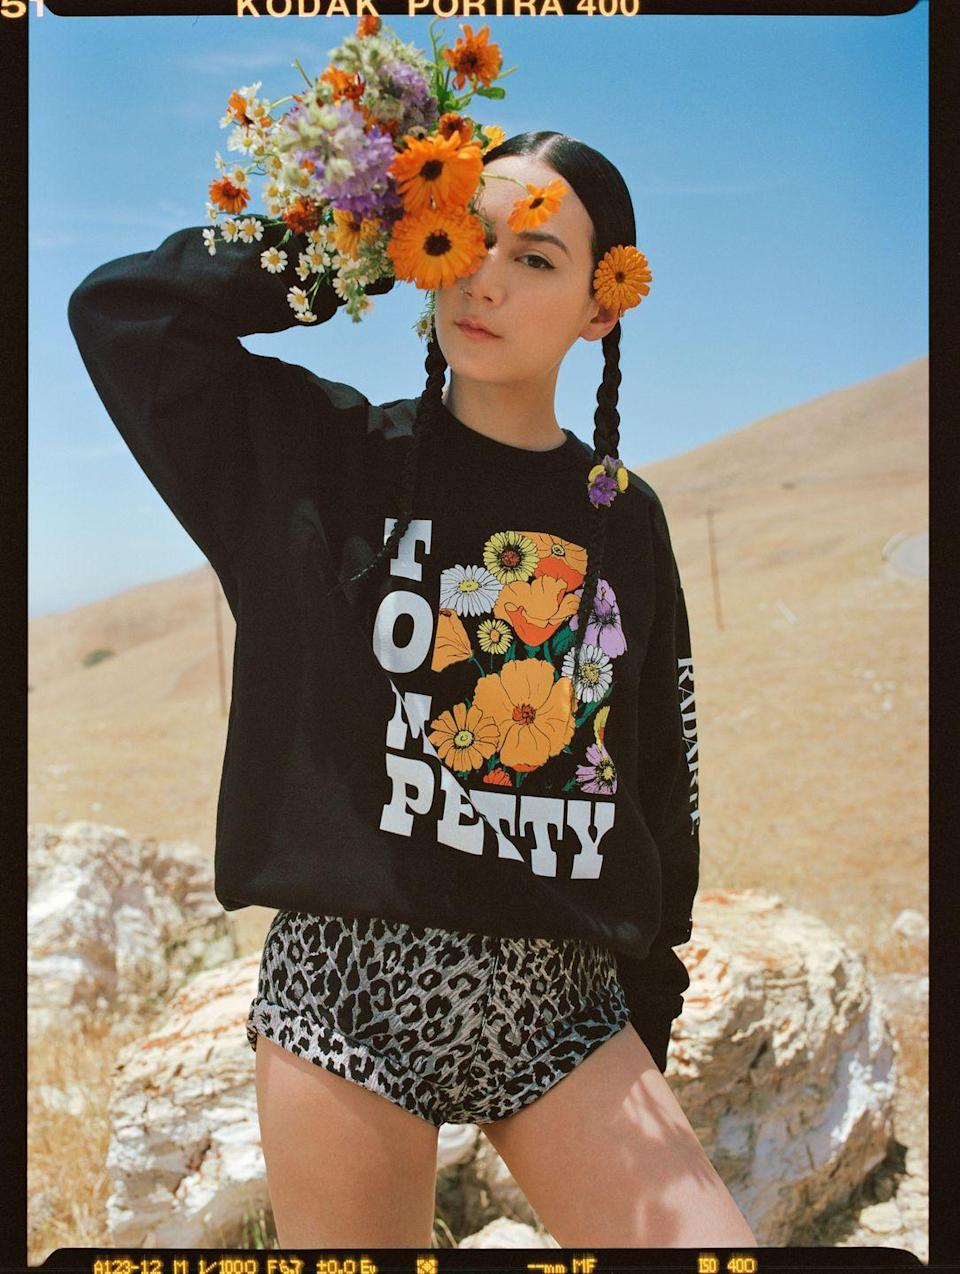 """<p><strong>Who:</strong> Matchesfashion</p><p><strong>What: </strong>Rodarte x Tom Petty capsule collection</p><p><strong>Where: </strong>Exclusively on <a href=""""https://go.redirectingat.com?id=74968X1596630&url=https%3A%2F%2Fwww.matchesfashion.com%2Fus%2Fwomens%2Fdesigners%2Frodarte%3Fcta%3Dsearch%257Crodarte&sref=https%3A%2F%2Fwww.elle.com%2Ffashion%2Fshopping%2Fg37500051%2Fthe-launch-septembers-hottest-fashion-launches%2F"""" rel=""""nofollow noopener"""" target=""""_blank"""" data-ylk=""""slk:matchesfashion.com"""" class=""""link rapid-noclick-resp"""">matchesfashion.com</a></p><p><strong>Why:</strong> Matchesfashion has partnered with Rodarte's Kate and Laura Mulleavy and Tom Petty's daughters, Adria Petty and Annakim Violette, to create a nostalgic collection honoring the rocker's triumphant record <em>Wildflowers</em>. The bright colors of the '60s pair perfectly with the relaxed feeling of Rodarte's 'Radarte' line of easy sweatsuits. To honor Petty and his legendary album, the team tapped several contemporary artists who channel his sense of cool to star in the campaign, including Japanese Breakfast (pictured here), King Princess, Kilo Kish, and Weyes Blood. </p><p><a class=""""link rapid-noclick-resp"""" href=""""https://go.redirectingat.com?id=74968X1596630&url=https%3A%2F%2Fwww.matchesfashion.com%2Fus%2Fwomens%2Fdesigners%2Frodarte%3Fcta%3Dsearch%257Crodarte&sref=https%3A%2F%2Fwww.elle.com%2Ffashion%2Fshopping%2Fg37500051%2Fthe-launch-septembers-hottest-fashion-launches%2F"""" rel=""""nofollow noopener"""" target=""""_blank"""" data-ylk=""""slk:SHOP NOW"""">SHOP NOW</a> </p>"""